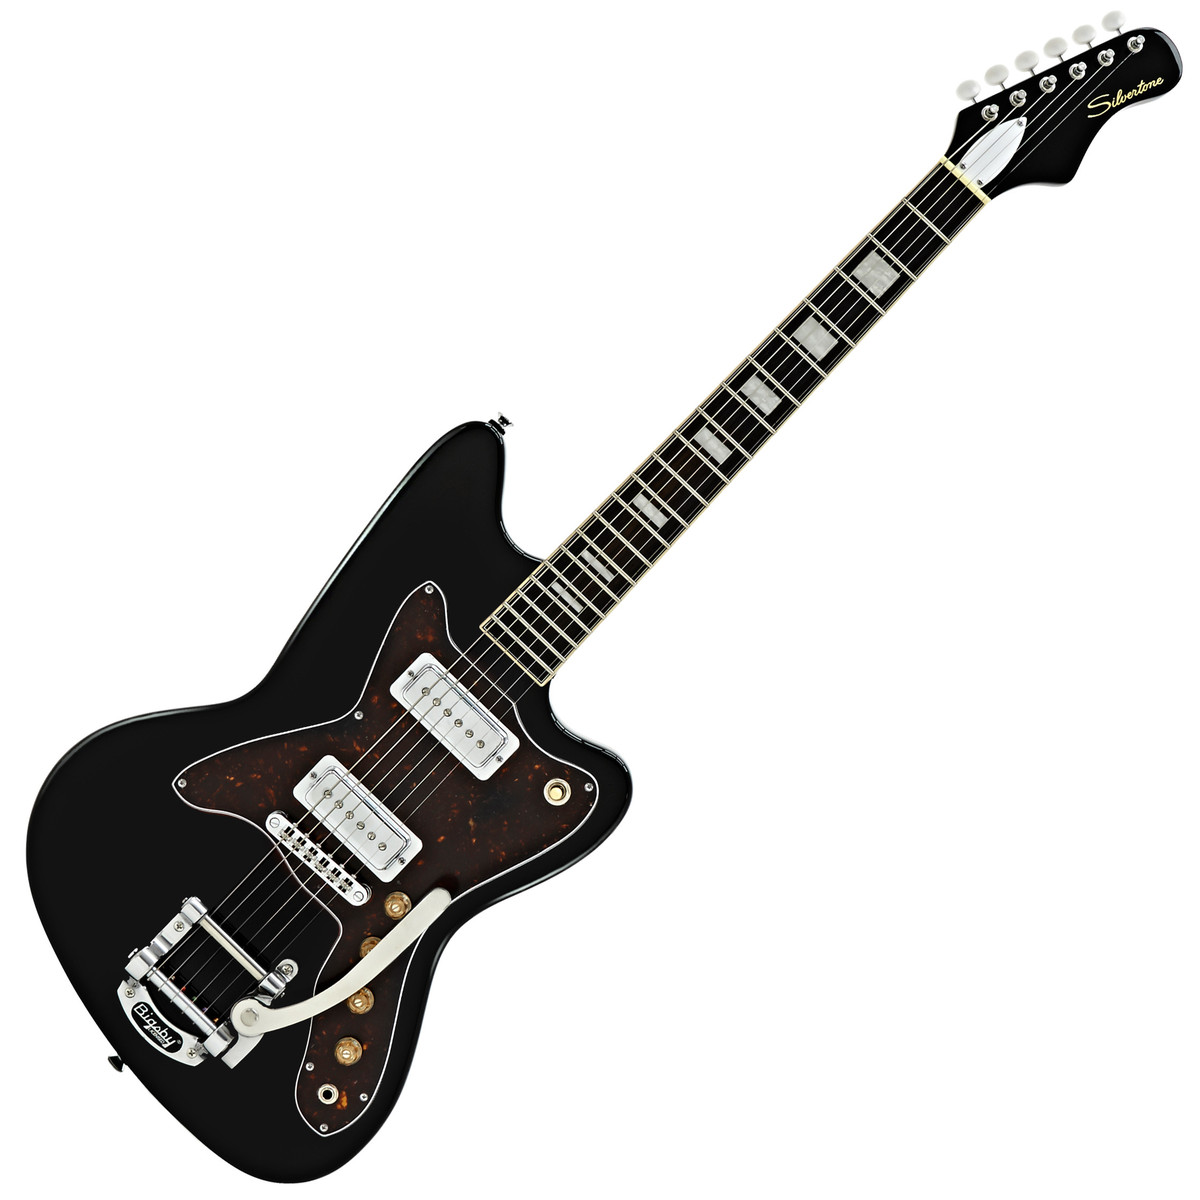 silvertone 1478 electric guitar black at gear4music. Black Bedroom Furniture Sets. Home Design Ideas